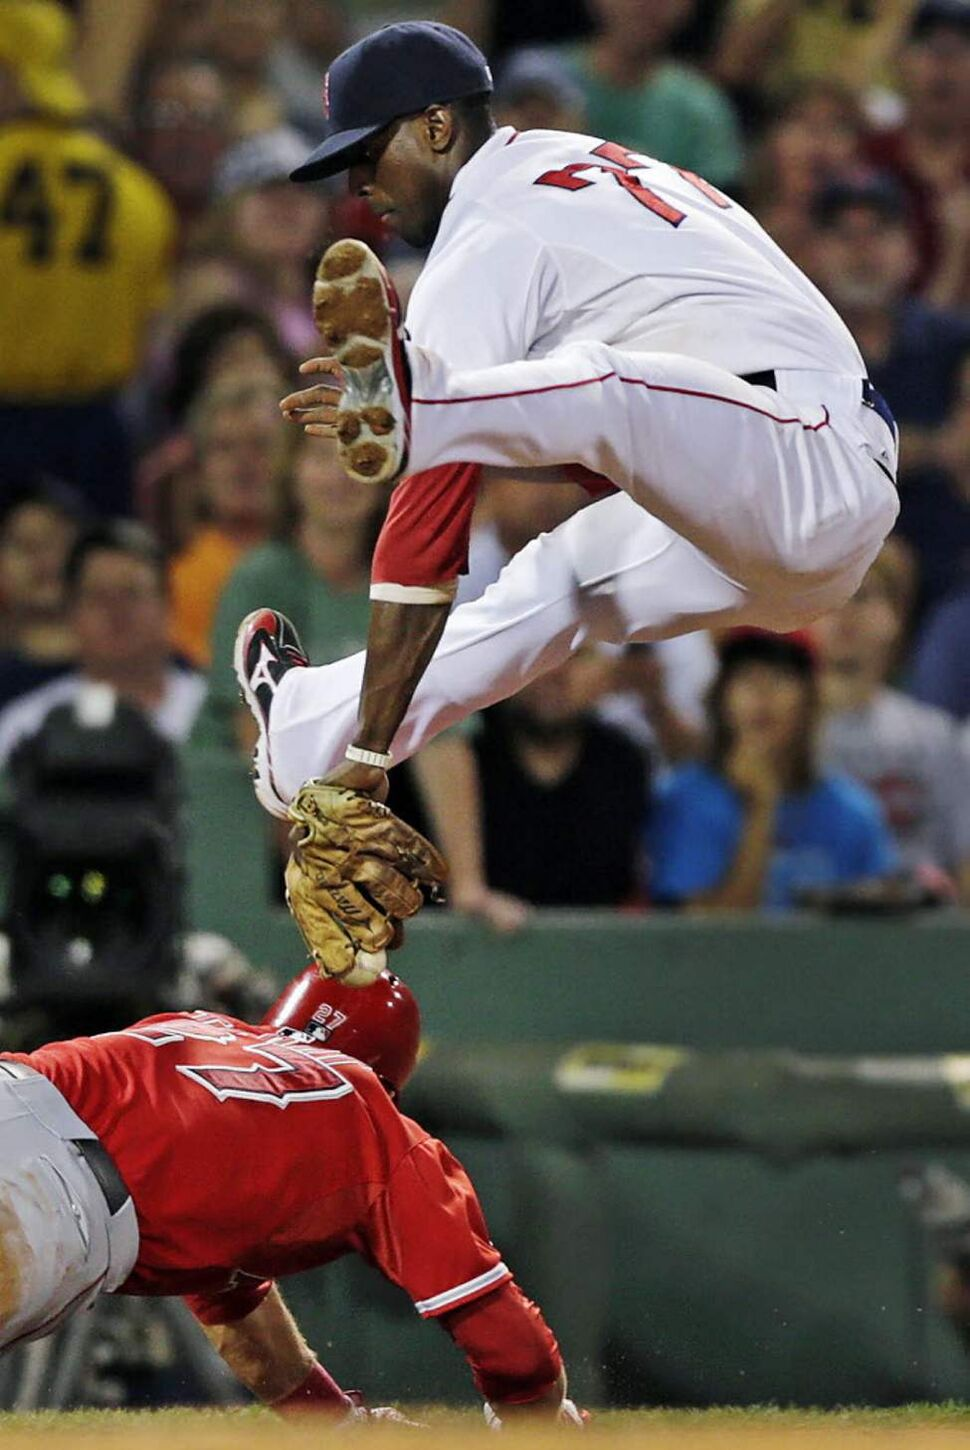 Boston Red Sox third baseman Pedro Ciriaco, top, drops his glove down between his legs as he tries unsuccessfully to catch Los Angeles Angels' Mike Trout diving back to third on a rundown in the third inning of a baseball game at Fenway Park in Boston. (AP Photo/Charles Krupa)